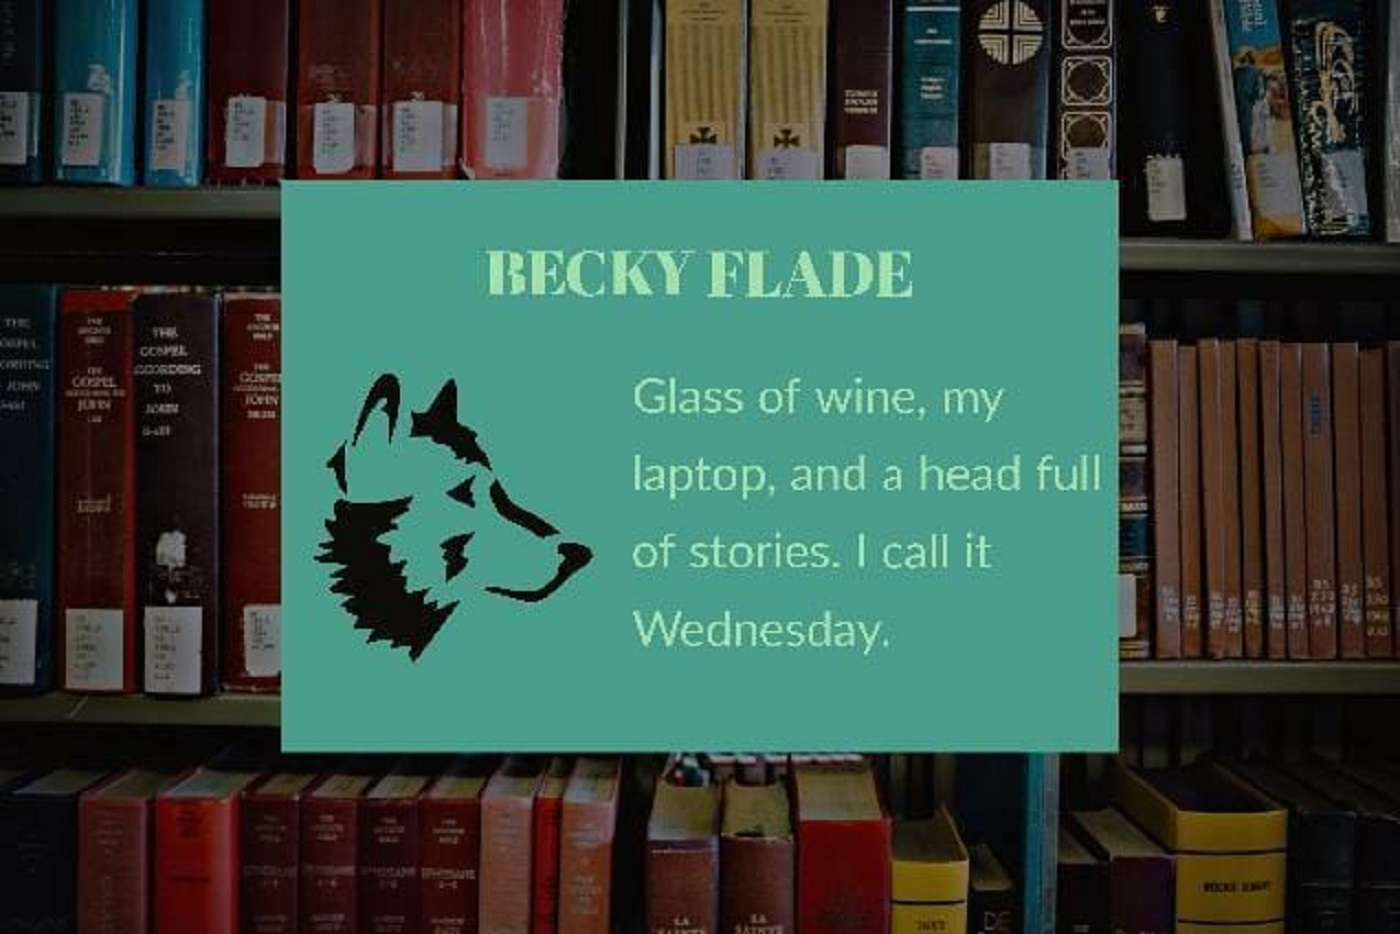 Books with Becky